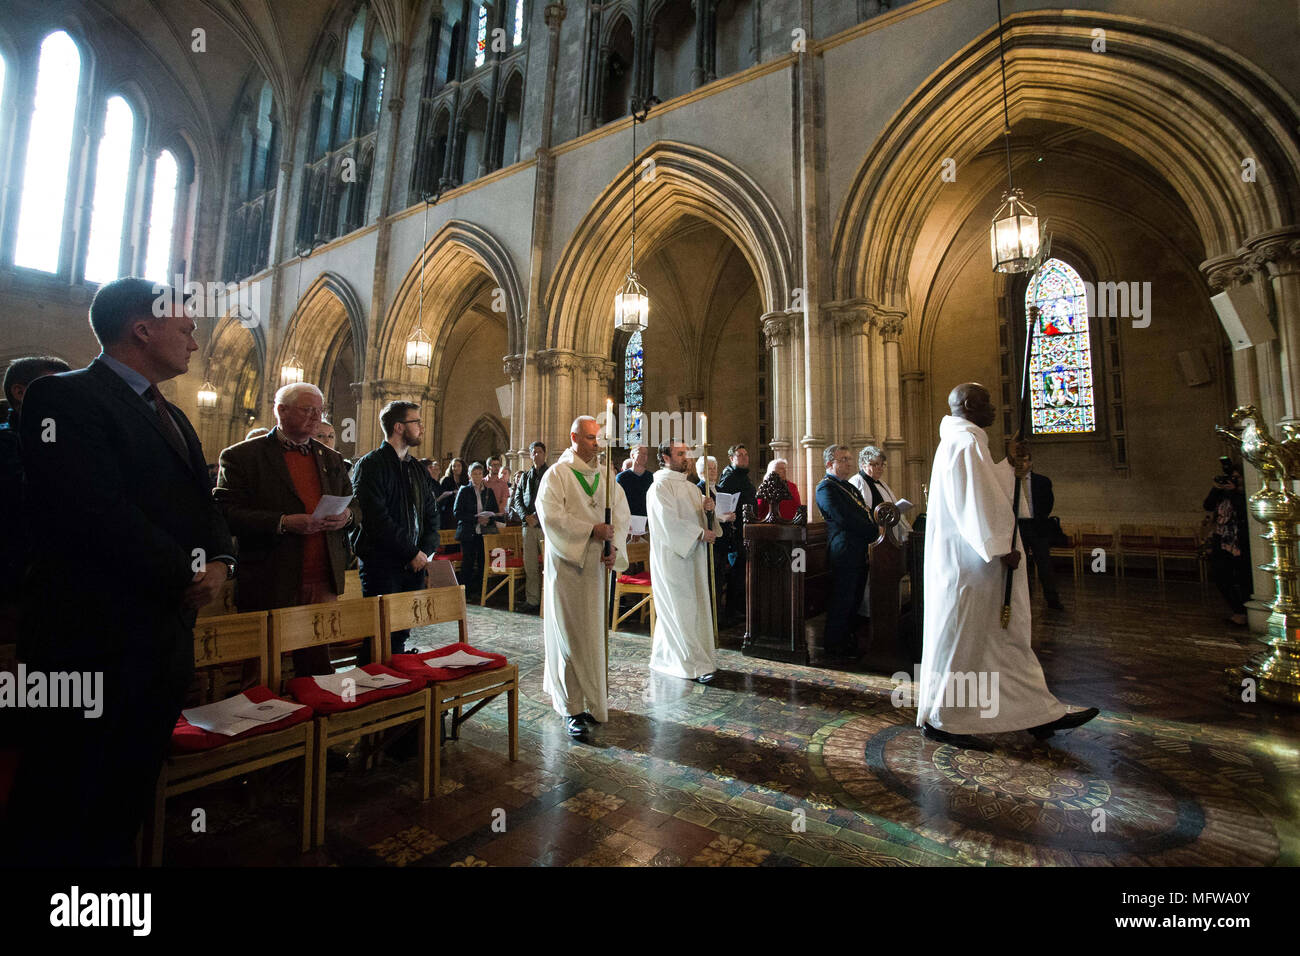 HHH IRISH Heart 26/4/2018 Christ Church Cathedral ,Dublin. The heart of Laurence OÕToole to Archbishop of Dublin, The relic was stolen from the cathedral in March 2012 and after a six year absence has been recovered undamaged. Pic Tom Honan. - Stock Image